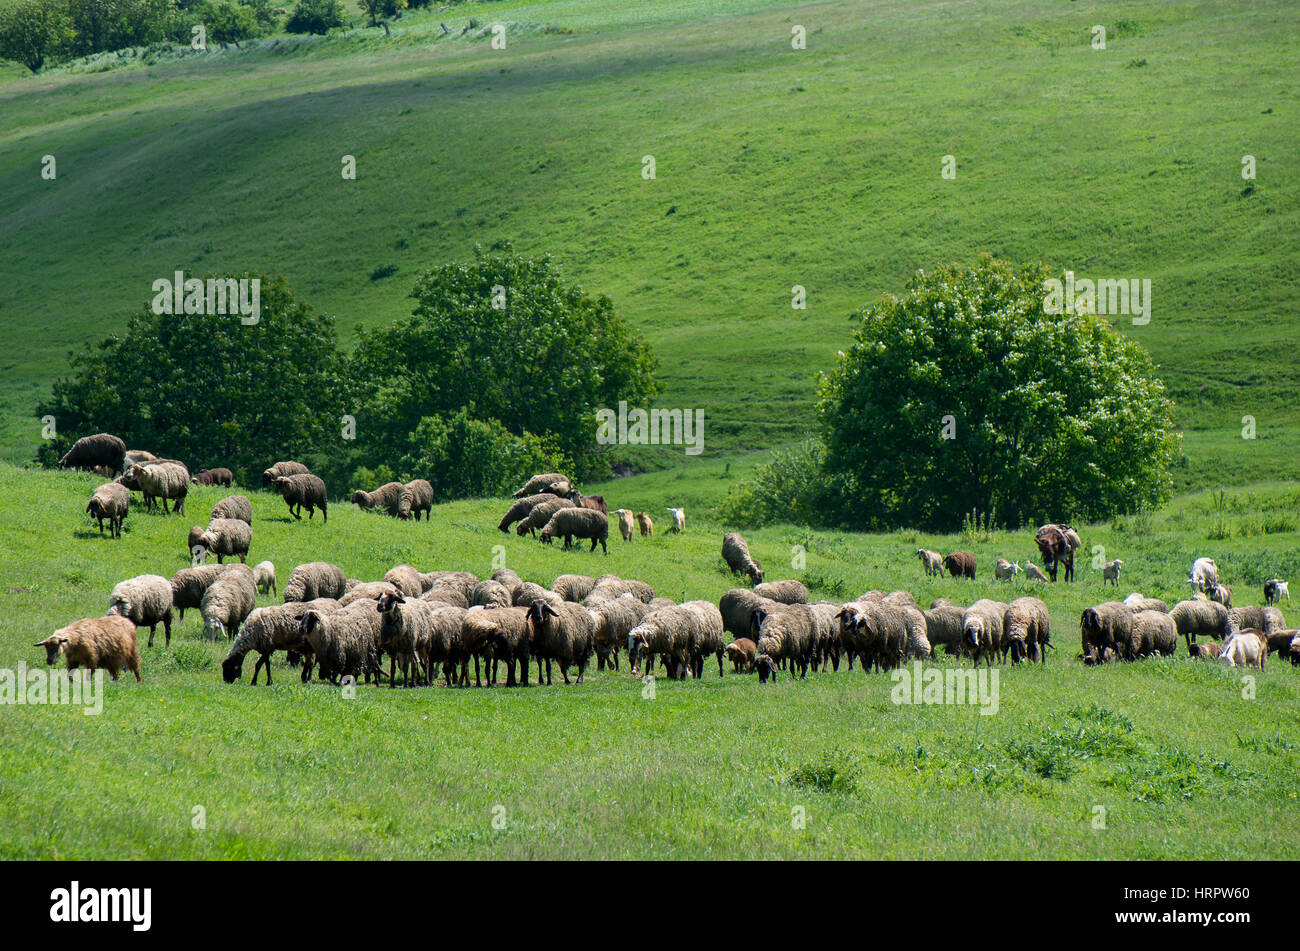 Herd of livestock grazing. Sheep, goats and donkey green meadow. - Stock Image